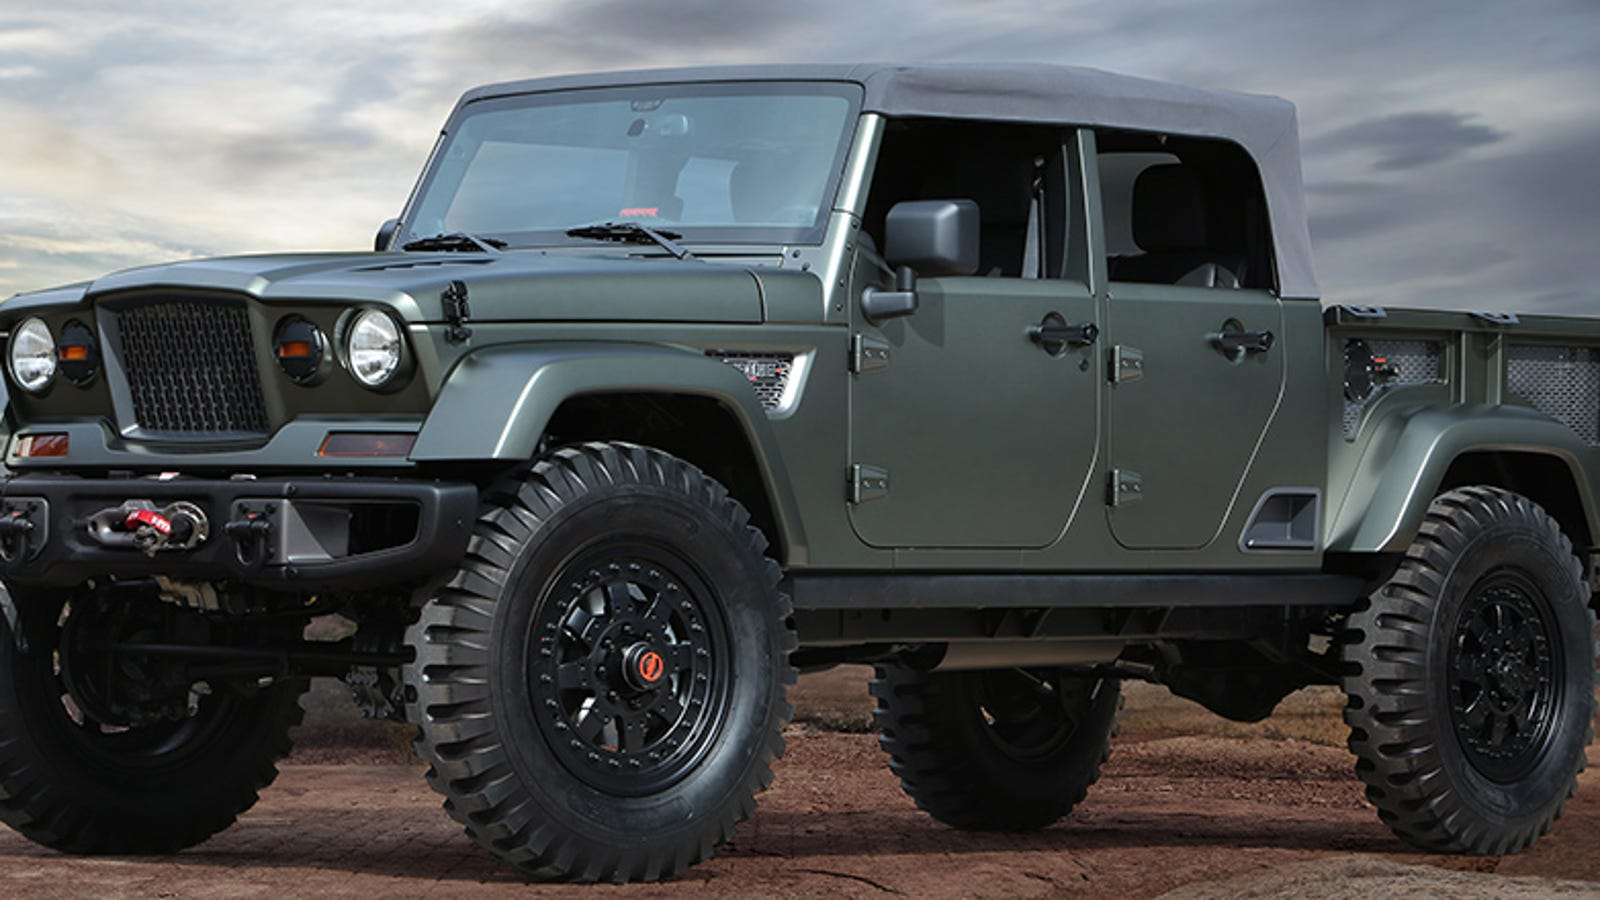 The Jeep Crew Chief Is What Happens When A Wrangler And An